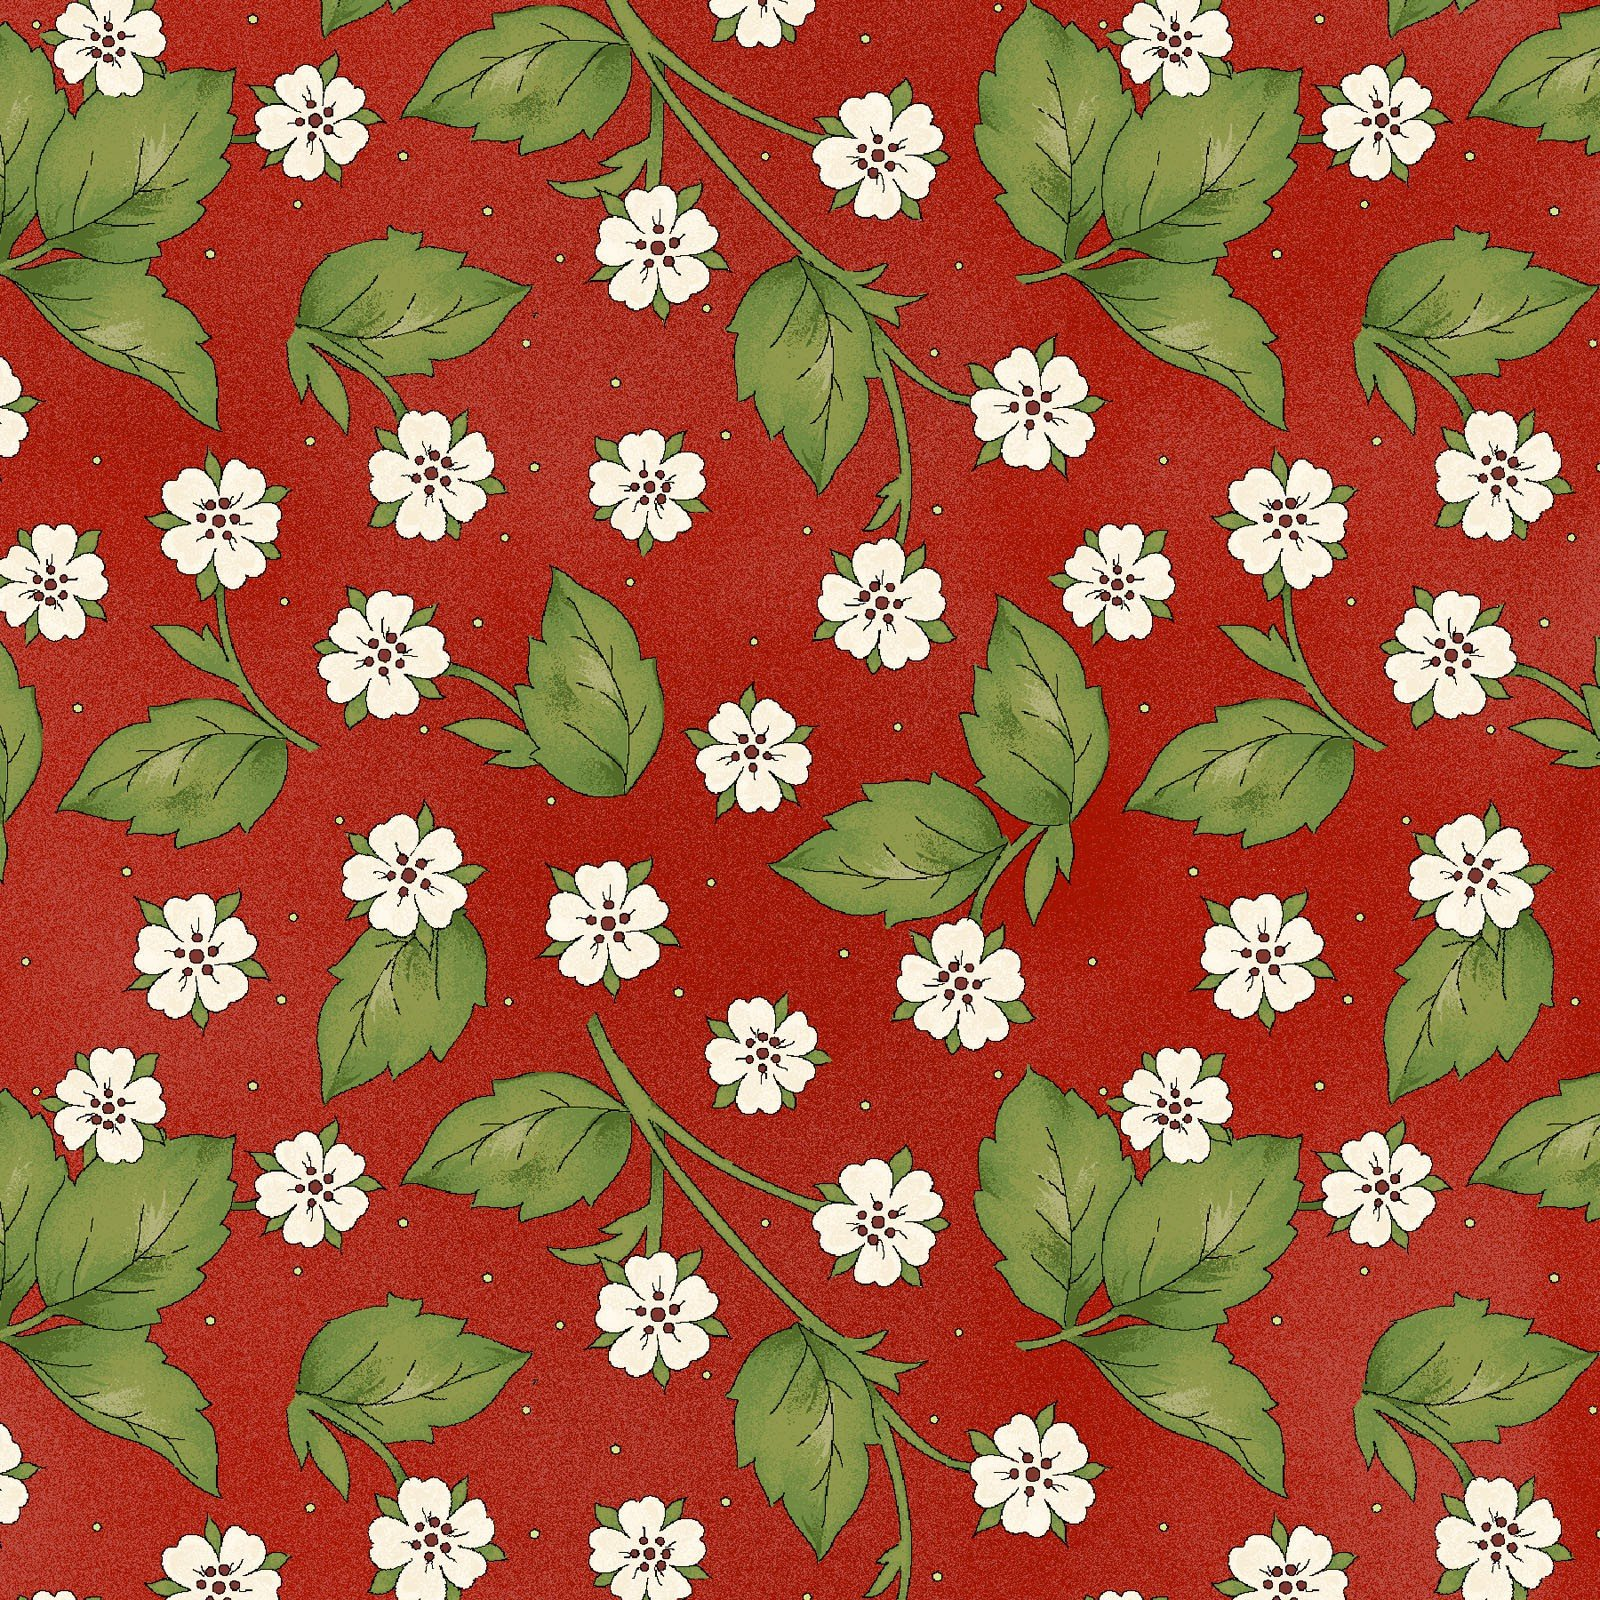 Strawberry Blossoms - Red<br/>Maywood Studio 8289-R